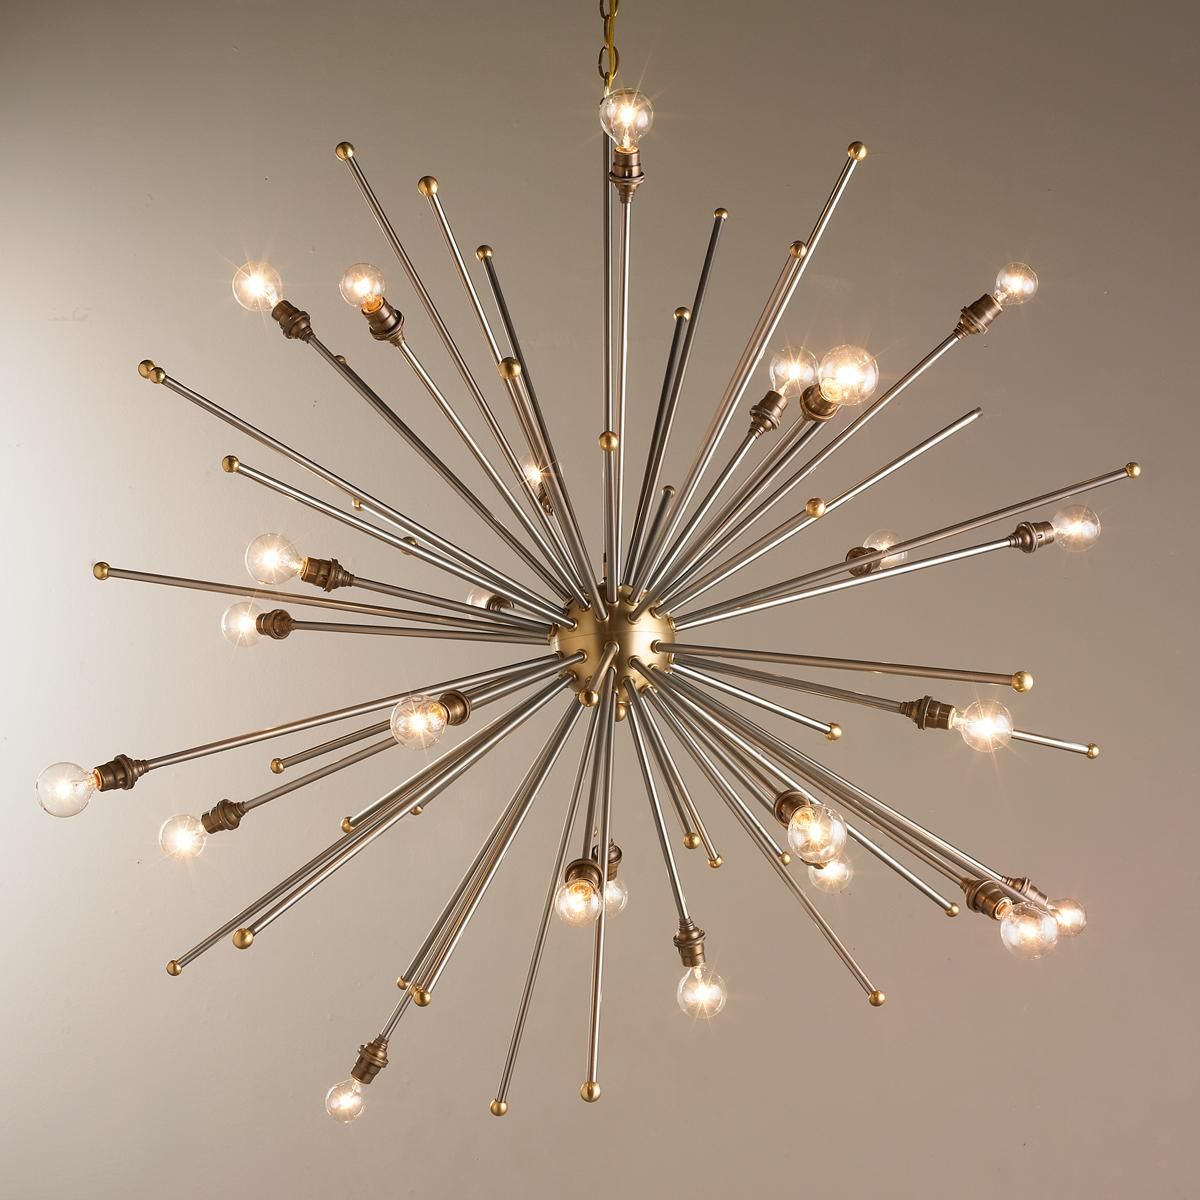 Mixed metals sputnik chandelier steel and brass combine to create mixed metals sputnik chandelier steel and brass combine to create this stunning well executed sputnik chandelier the antique brass sockets against the mozeypictures Images